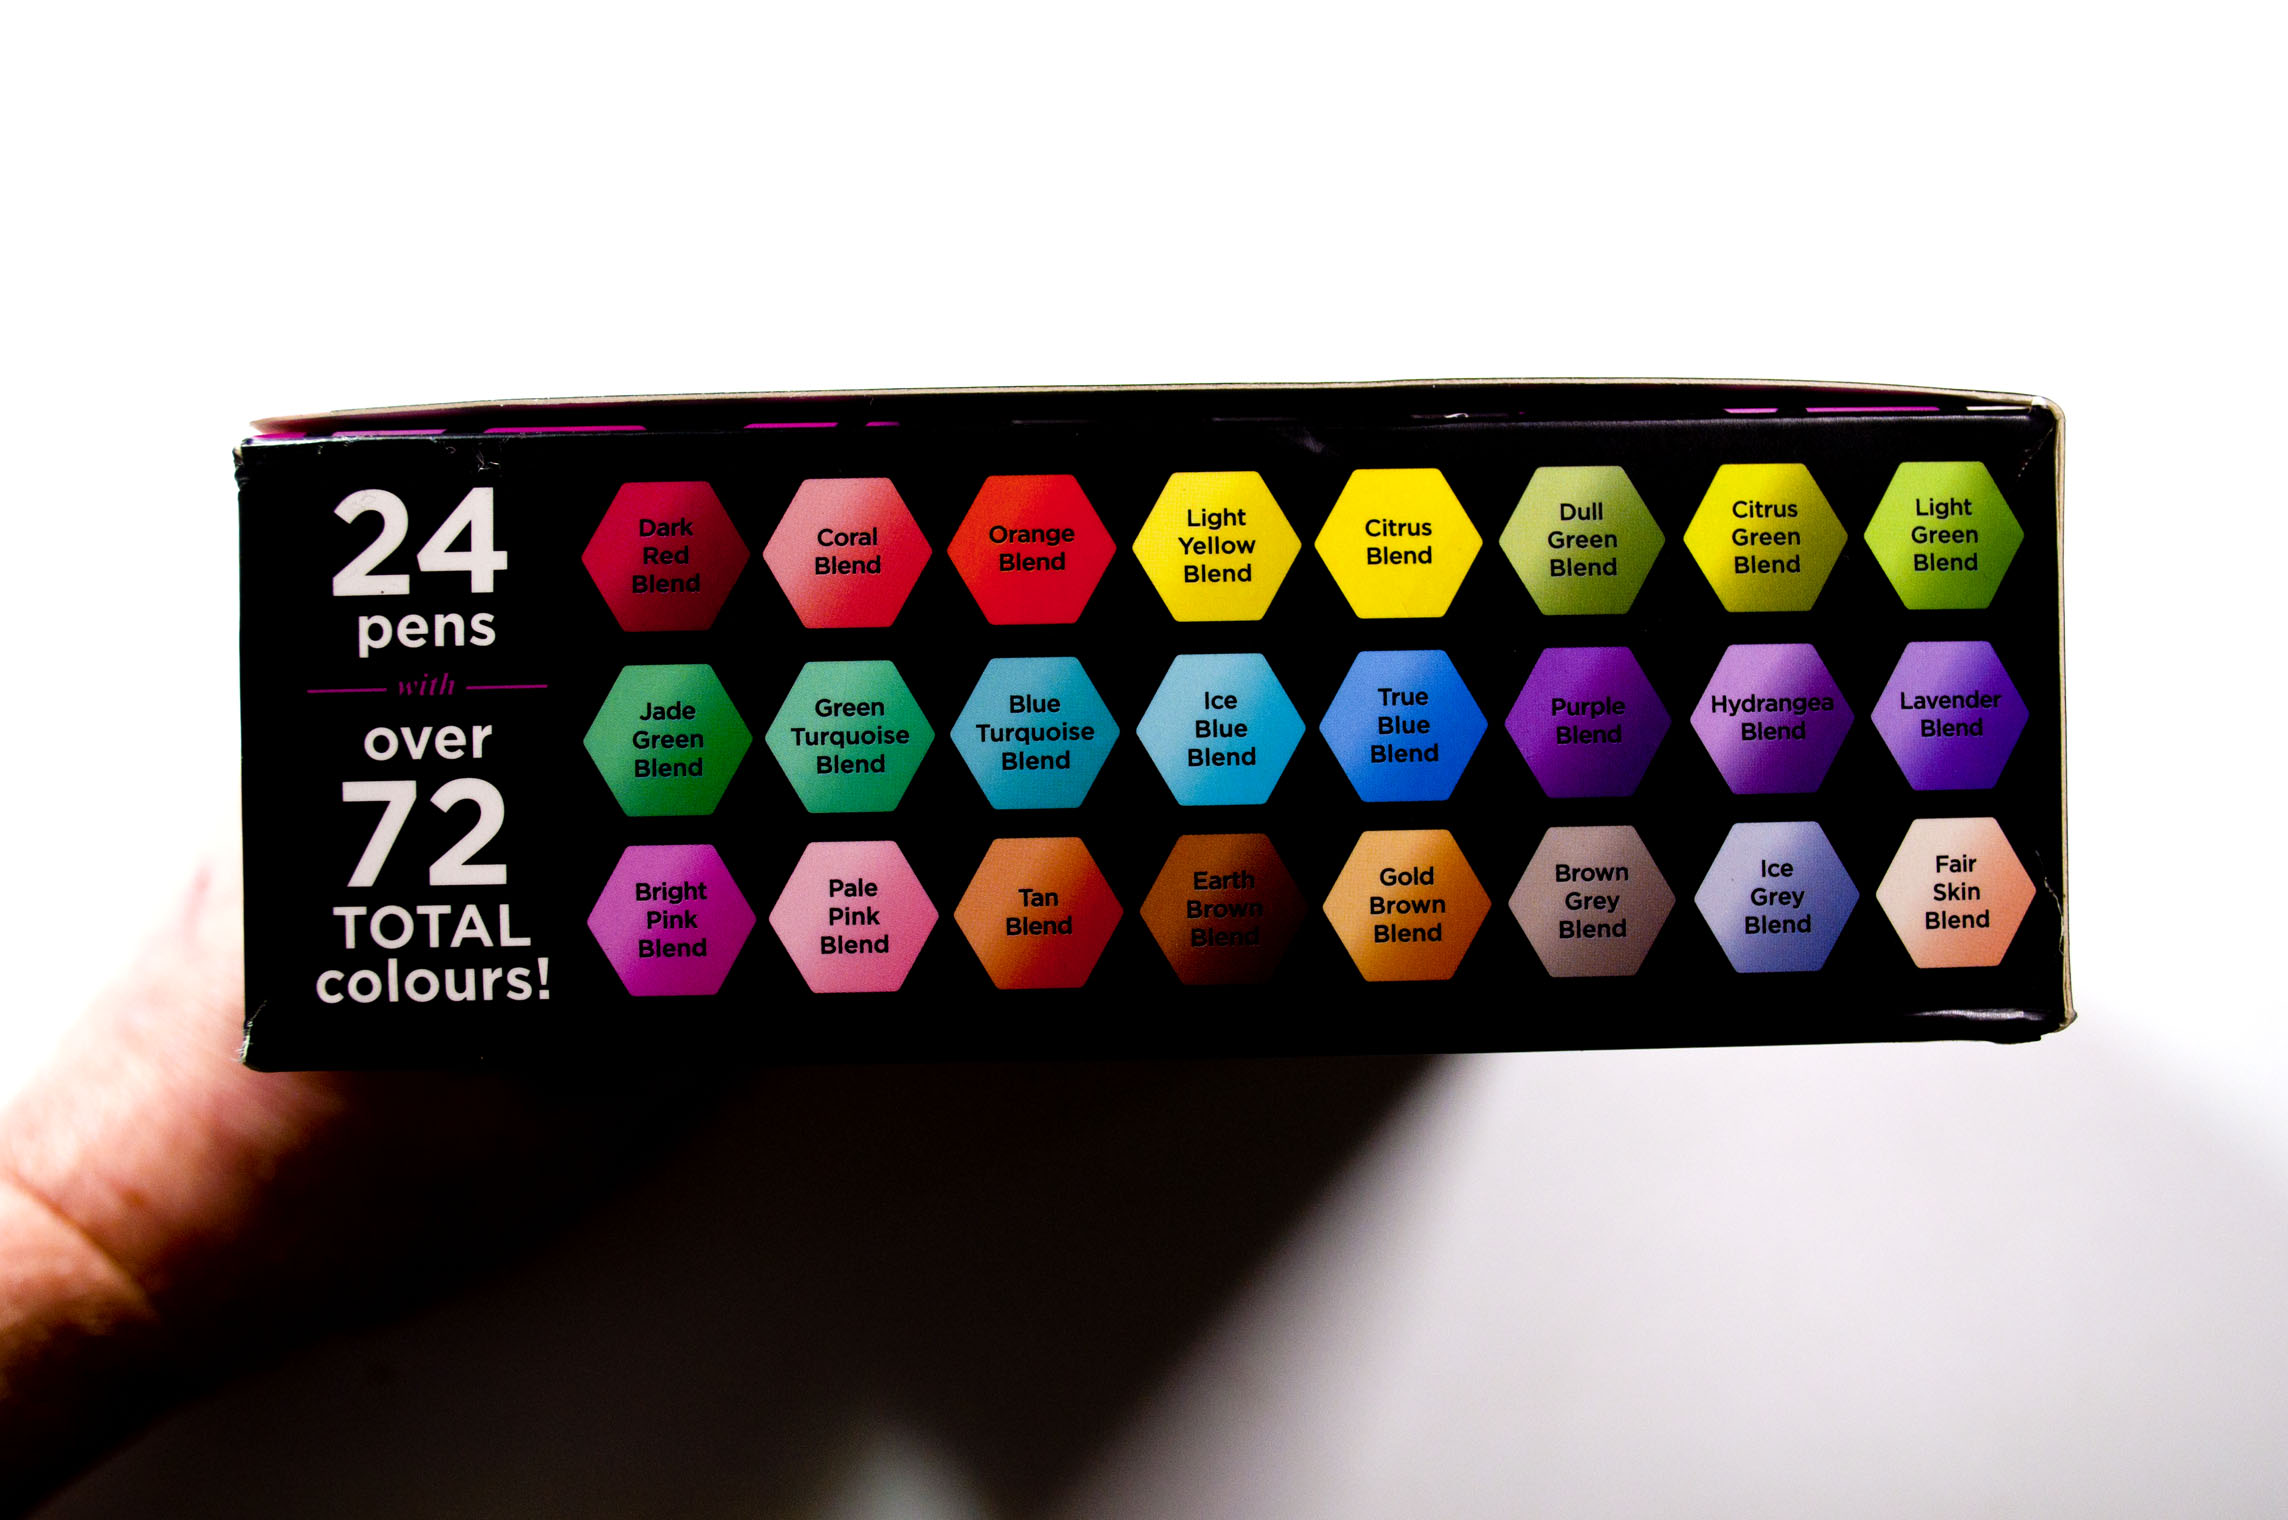 Red Brown Blend Spectrum Noir Tri-Blend Alcohol Based 3 in 1 Marker Pen